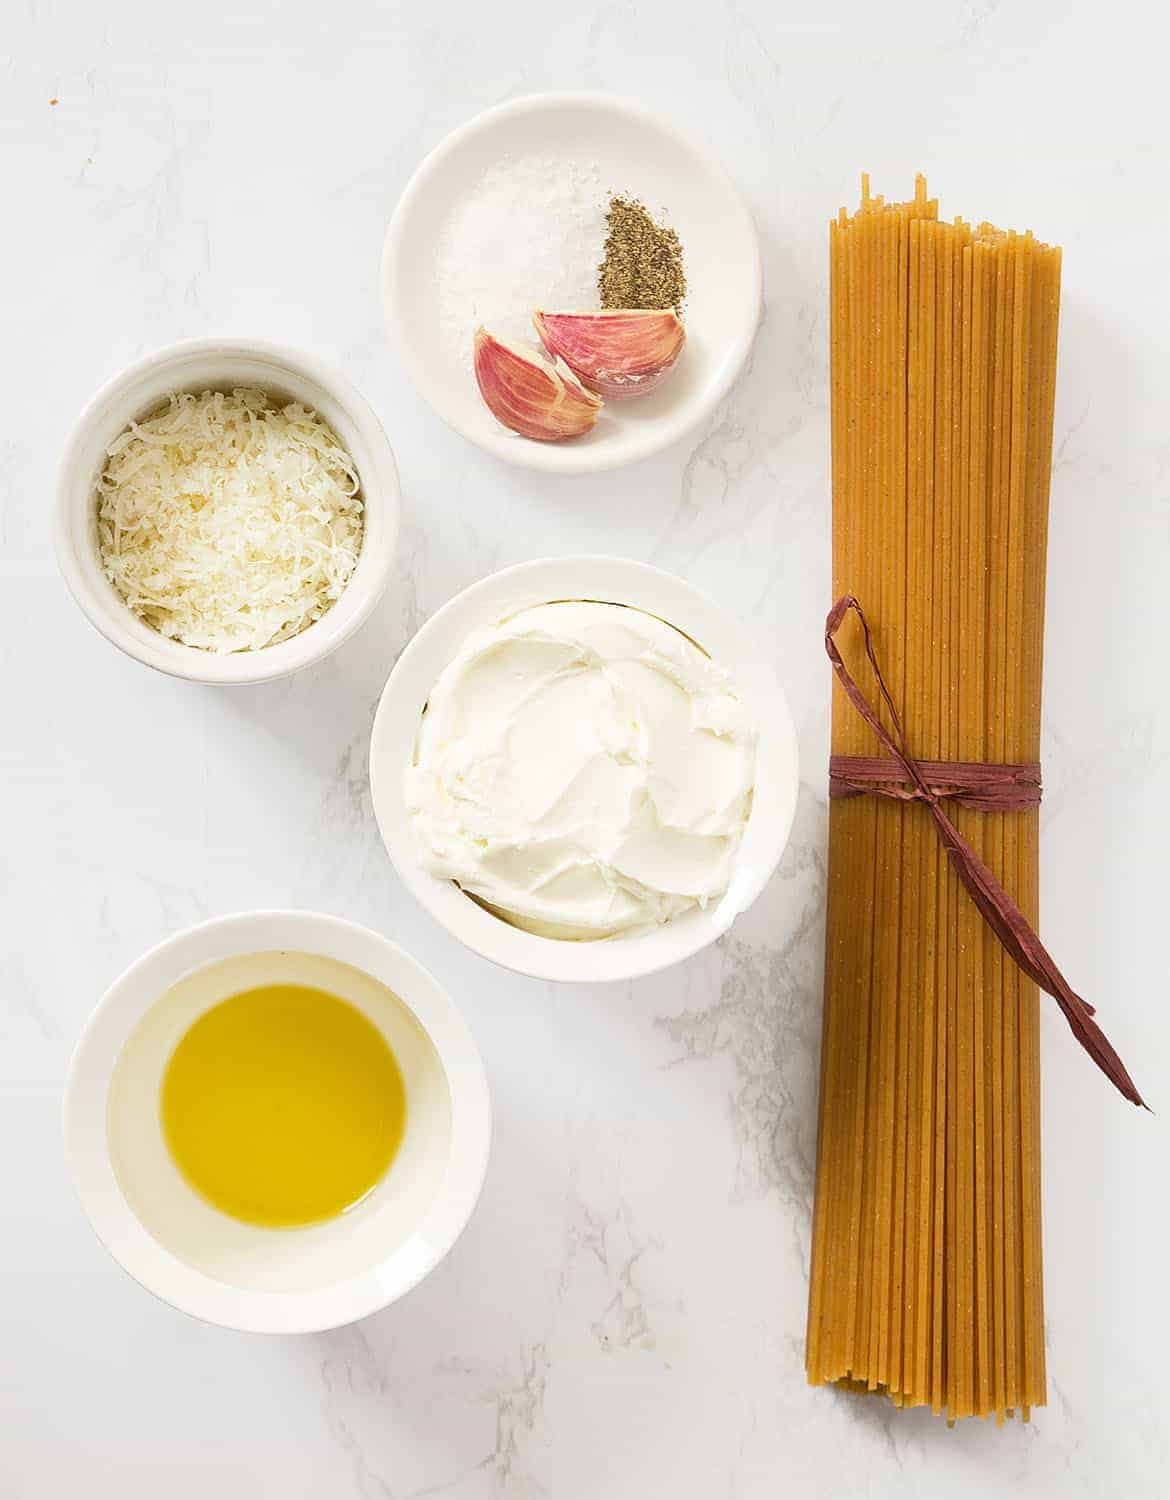 The ingredients to make this cream cheese pasta are arranged on a white table.